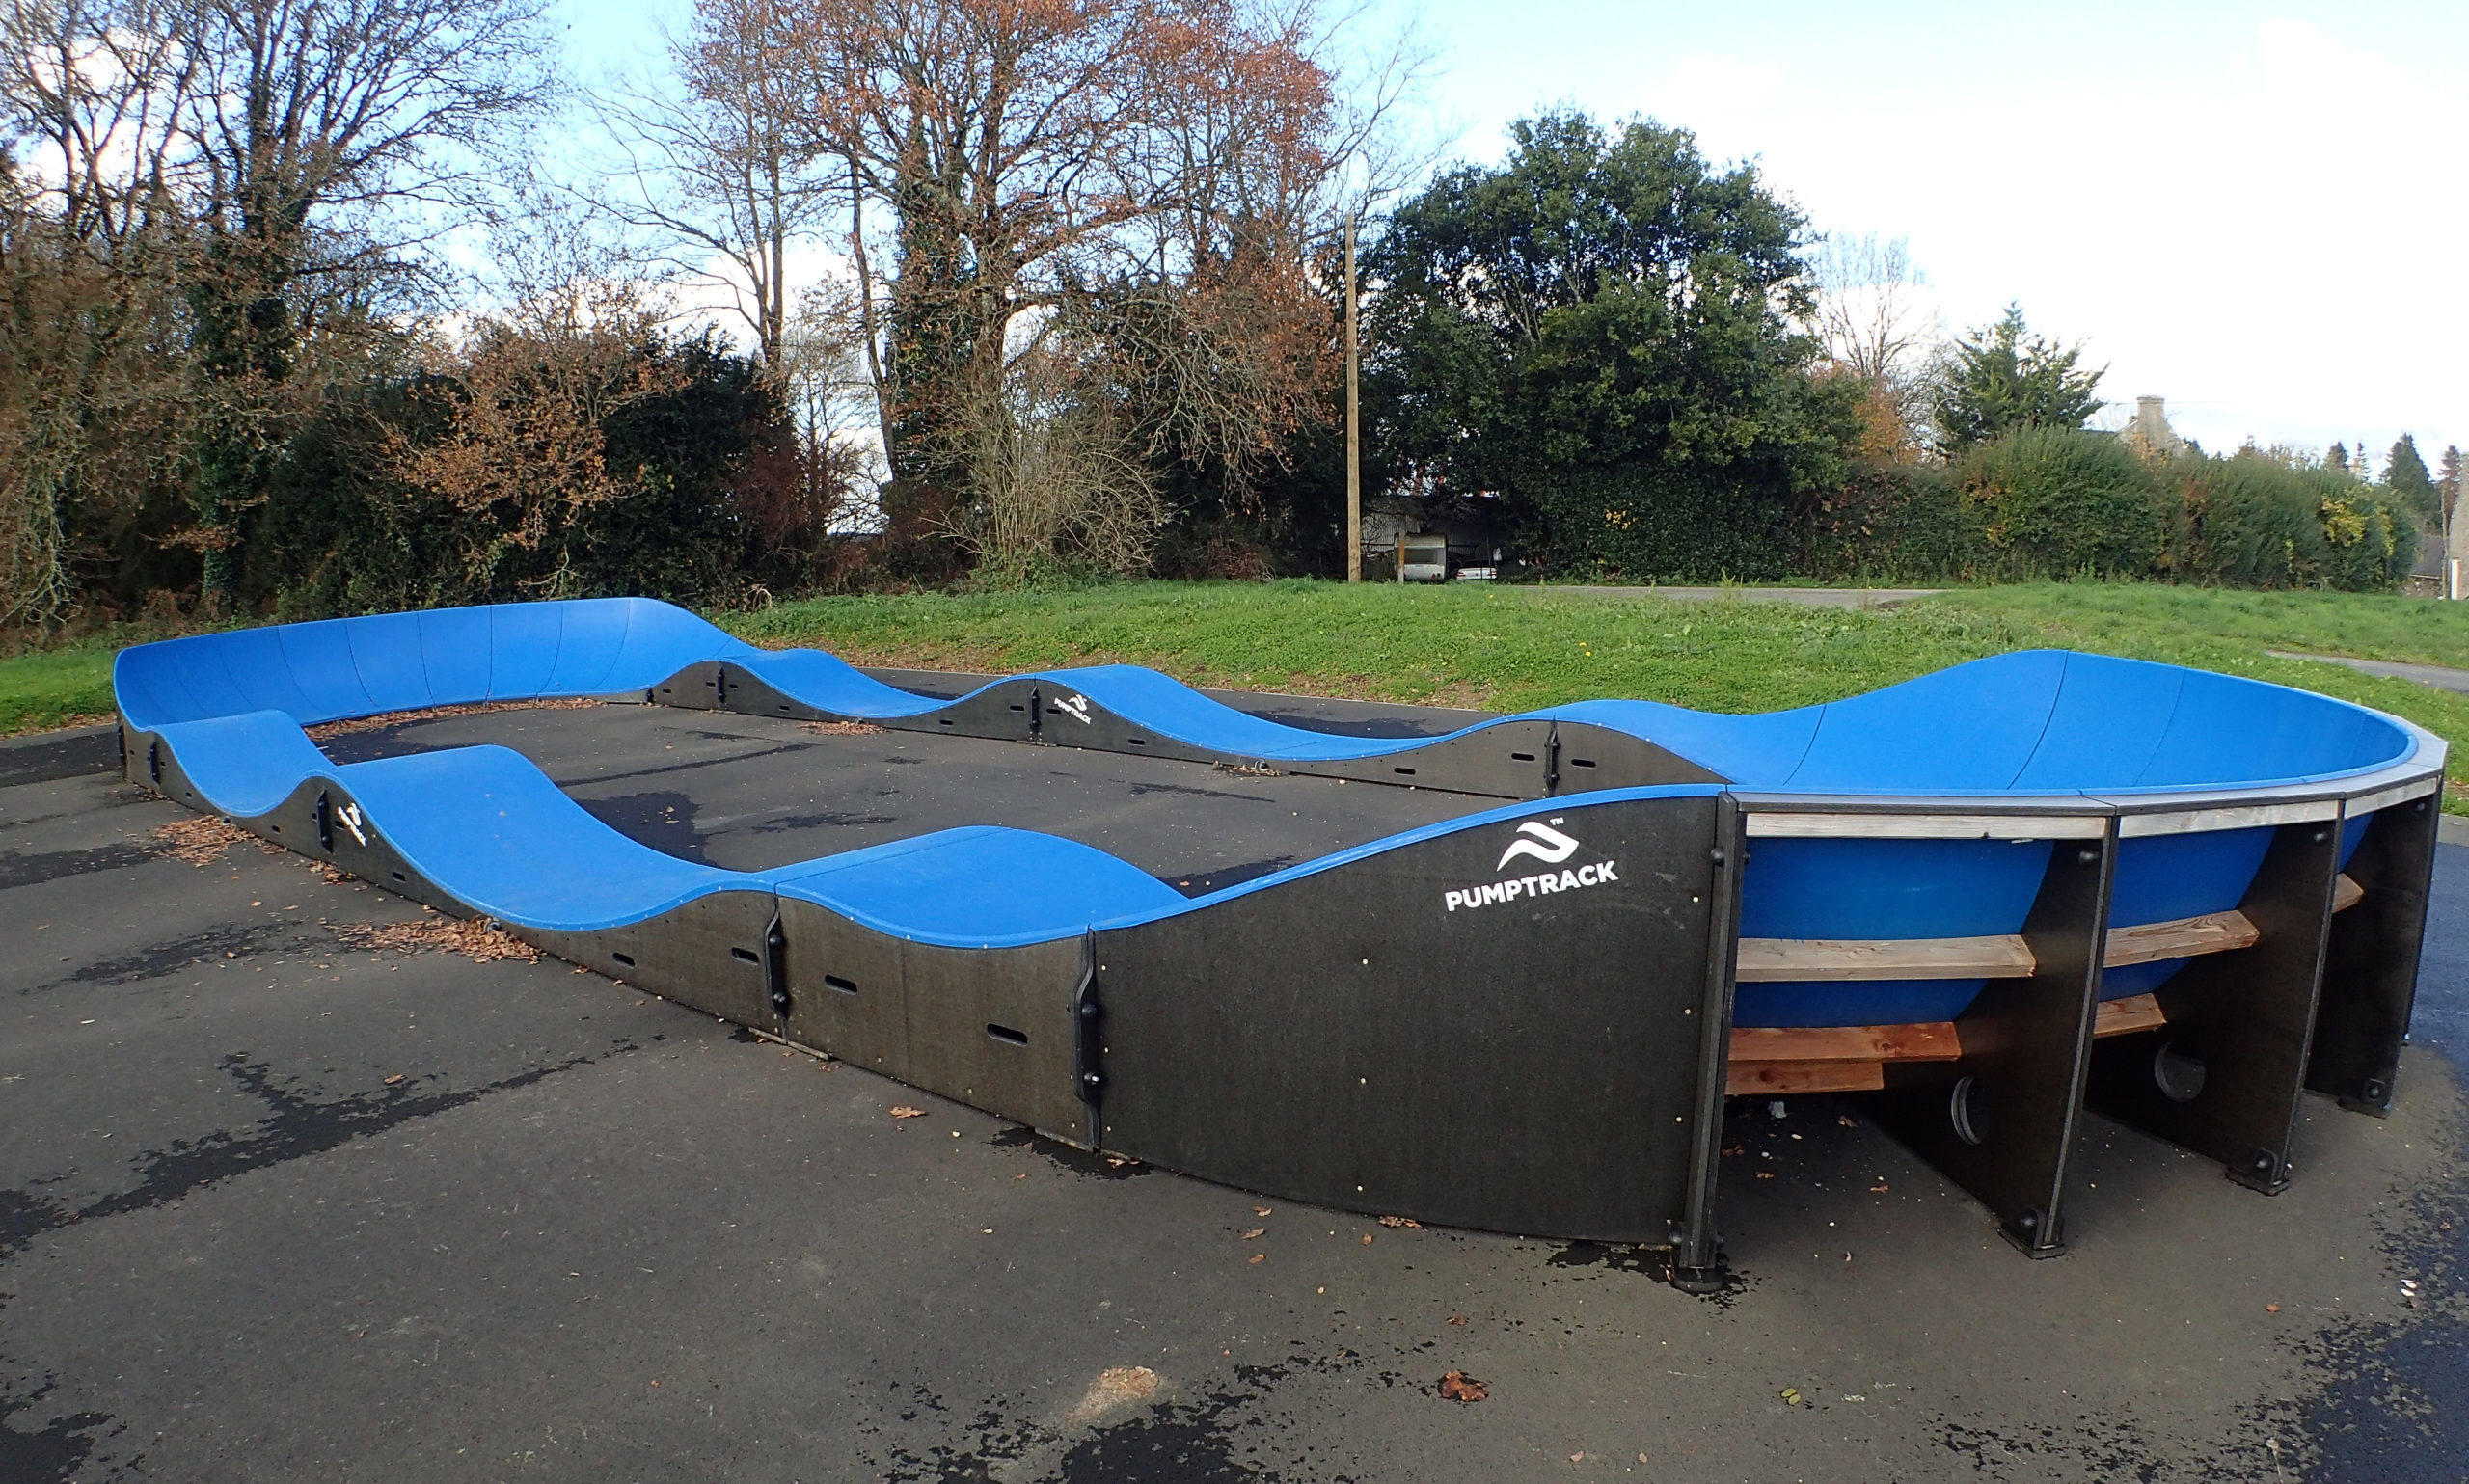 Le pumptrack de Bieuzy